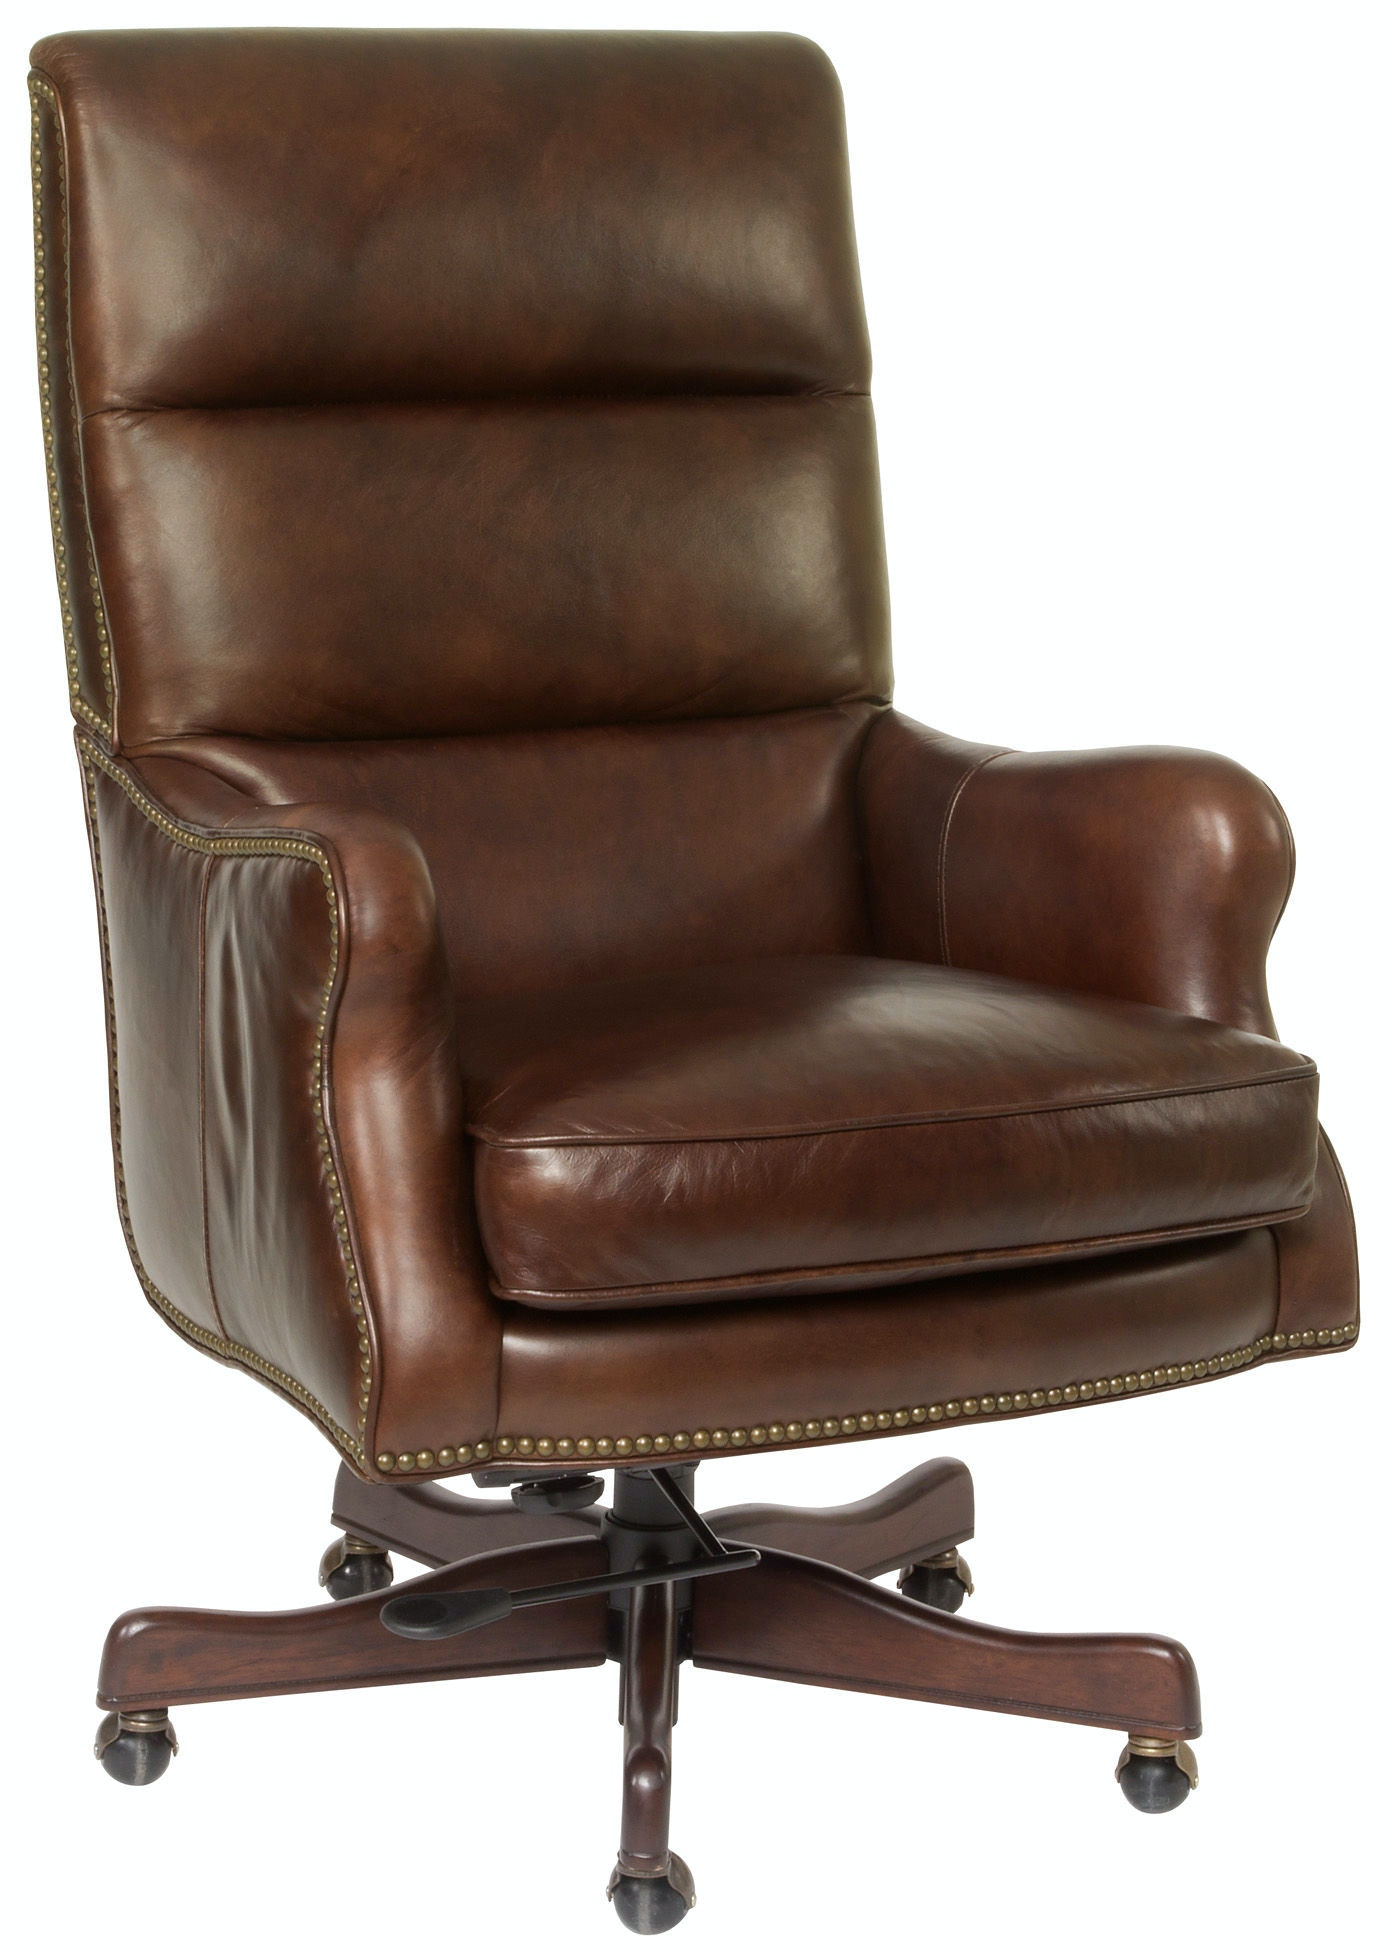 Hooker Chairs Hooker Furniture Home Office Victoria Executive Chair